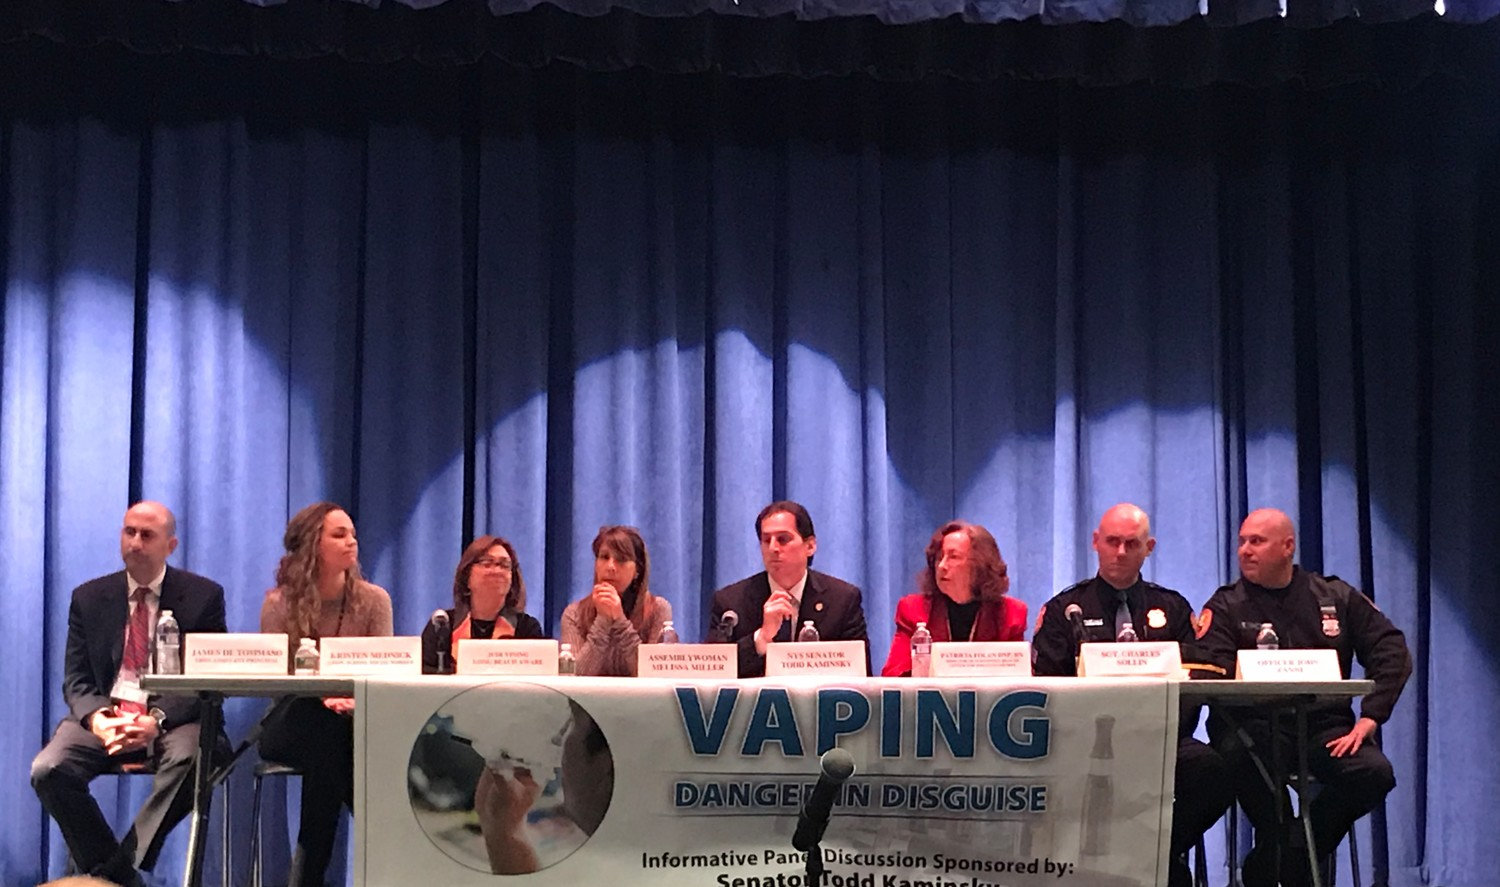 Vaping was the subject of a forum at East Rockaway Junior-Senior High School last week. Among the speakers were, from left, James DeTommaso, the high school's assistant principal; Kristen Mednick, a school social worker; Judi Vining, executive director of Long Beach Aware; State Assemblywoman Melissa Miller; State Sen. Todd Kaminsky; Patricia Folan, director of the Northwell Health Center for Tobacco Control; Nassau County Police Sgt. Charles Solan; and NCPD Officer John Zanni.